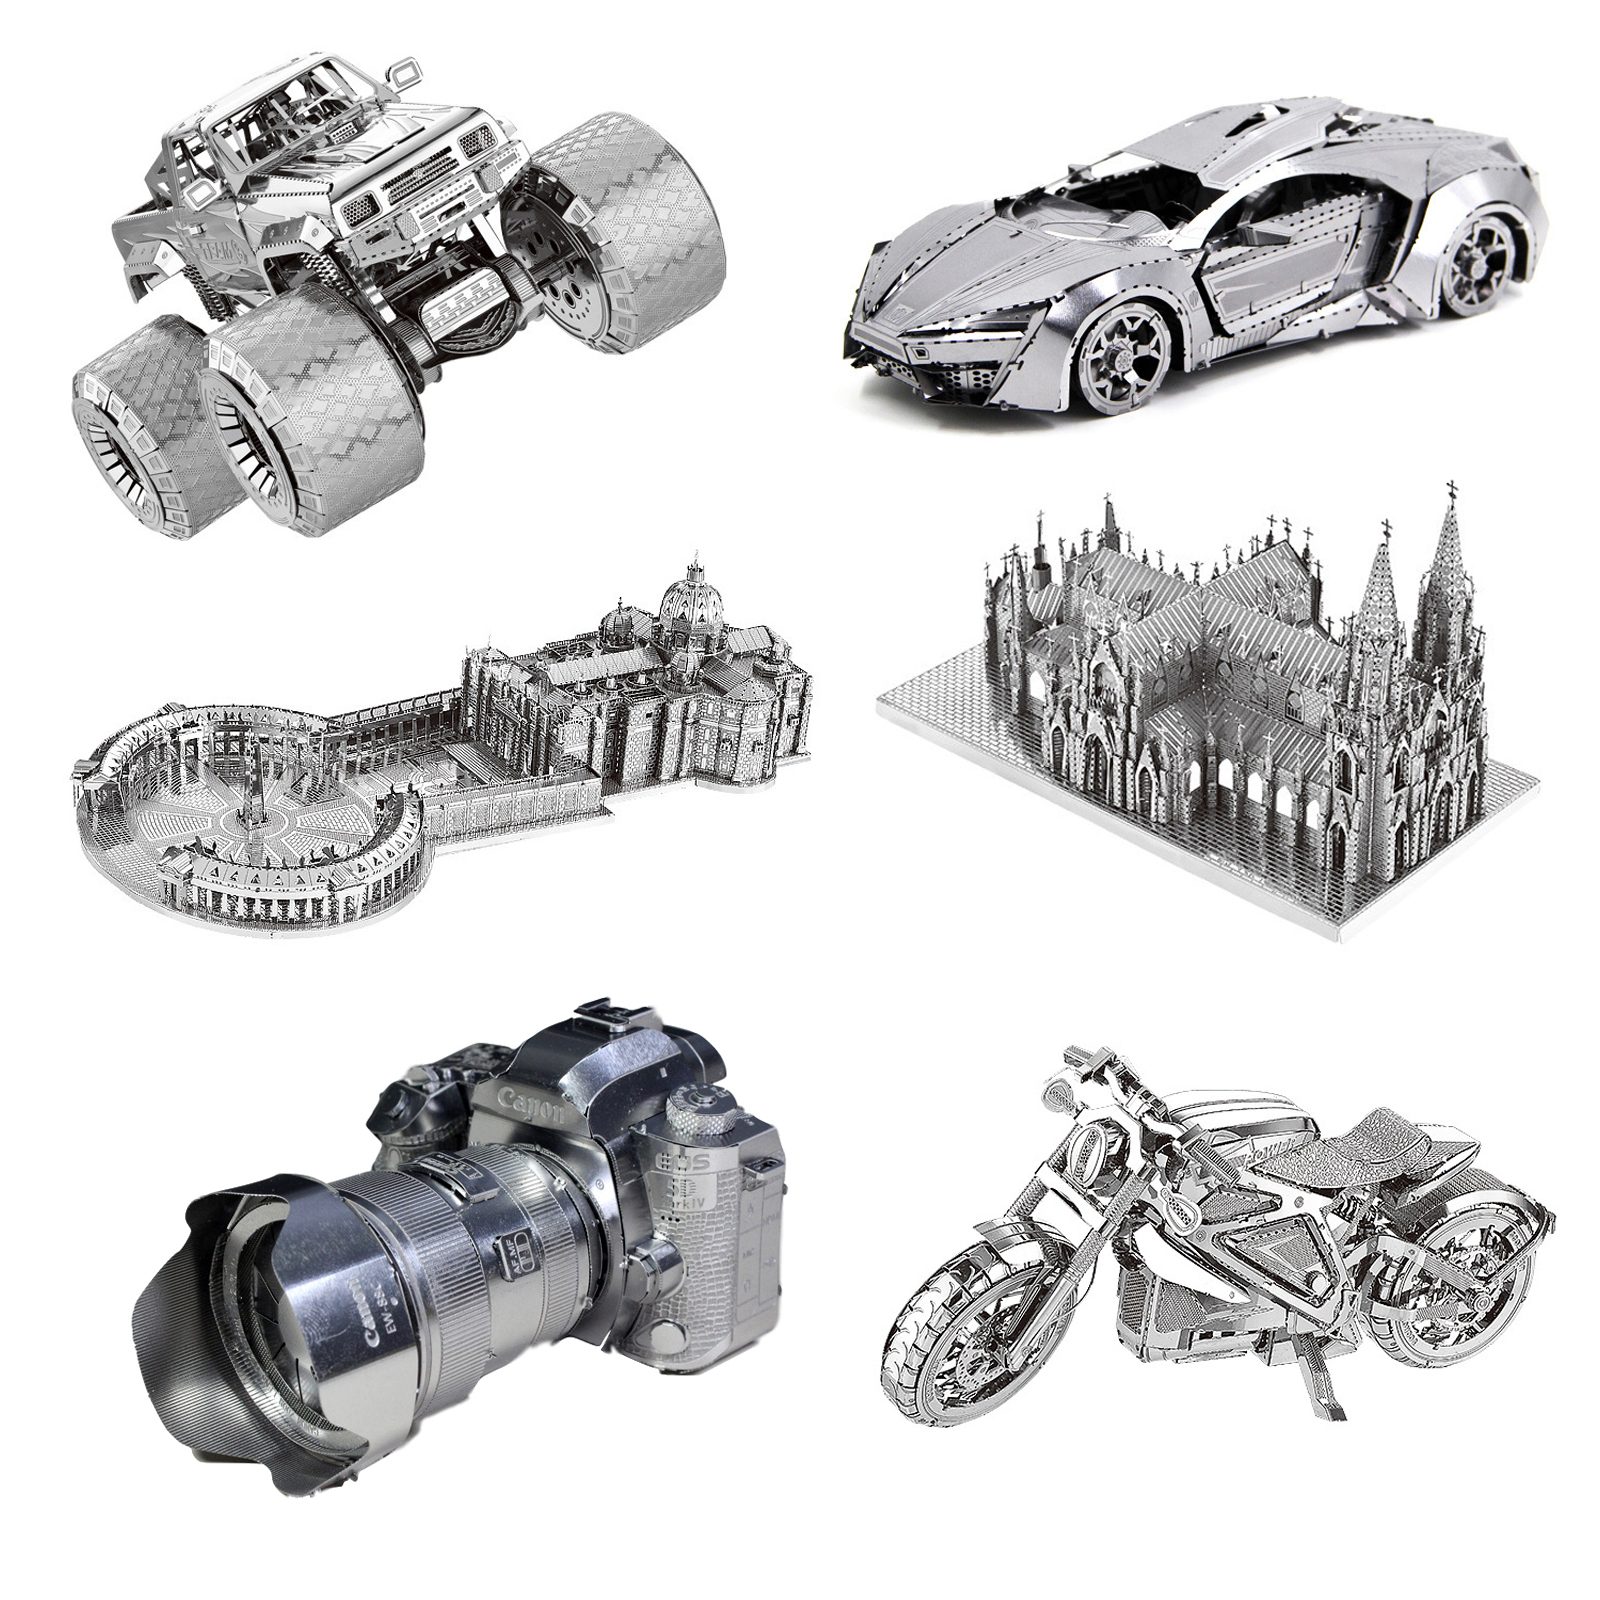 Church Motorcycle Truck 3D Metal Puzzle Model Kits DIY Laser Cut Assemble Jigsaw Toy Desktop Decoration GIFT For Audit Children